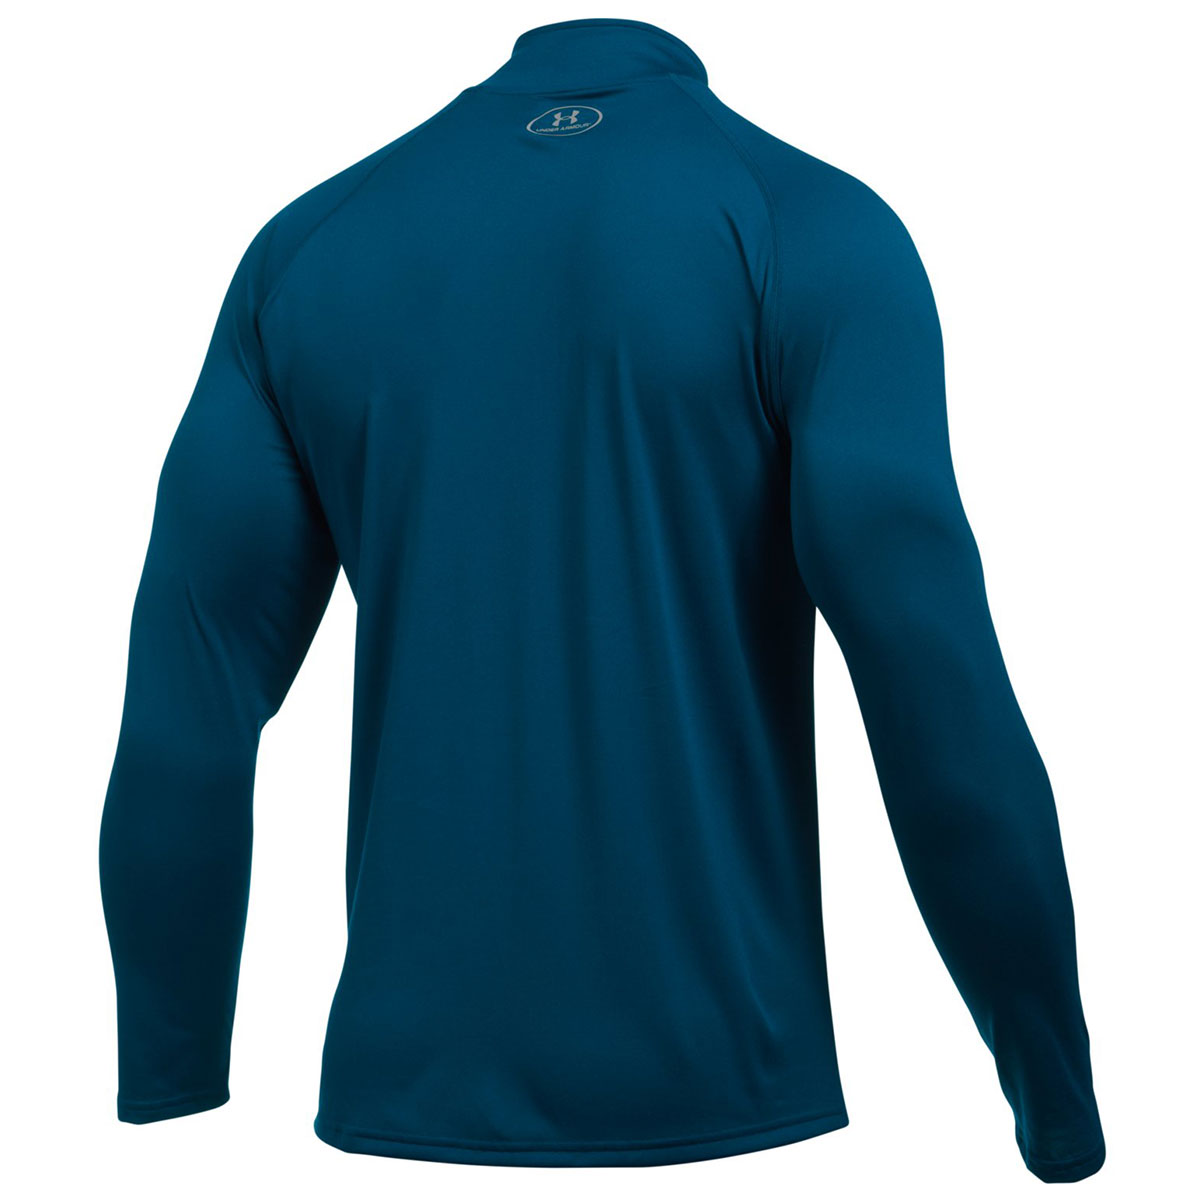 Under-Armour-Mens-UA-Tech-1-4-Zip-Long-Sleeve-Top-Workout-Layer-27-OFF-RRP thumbnail 33